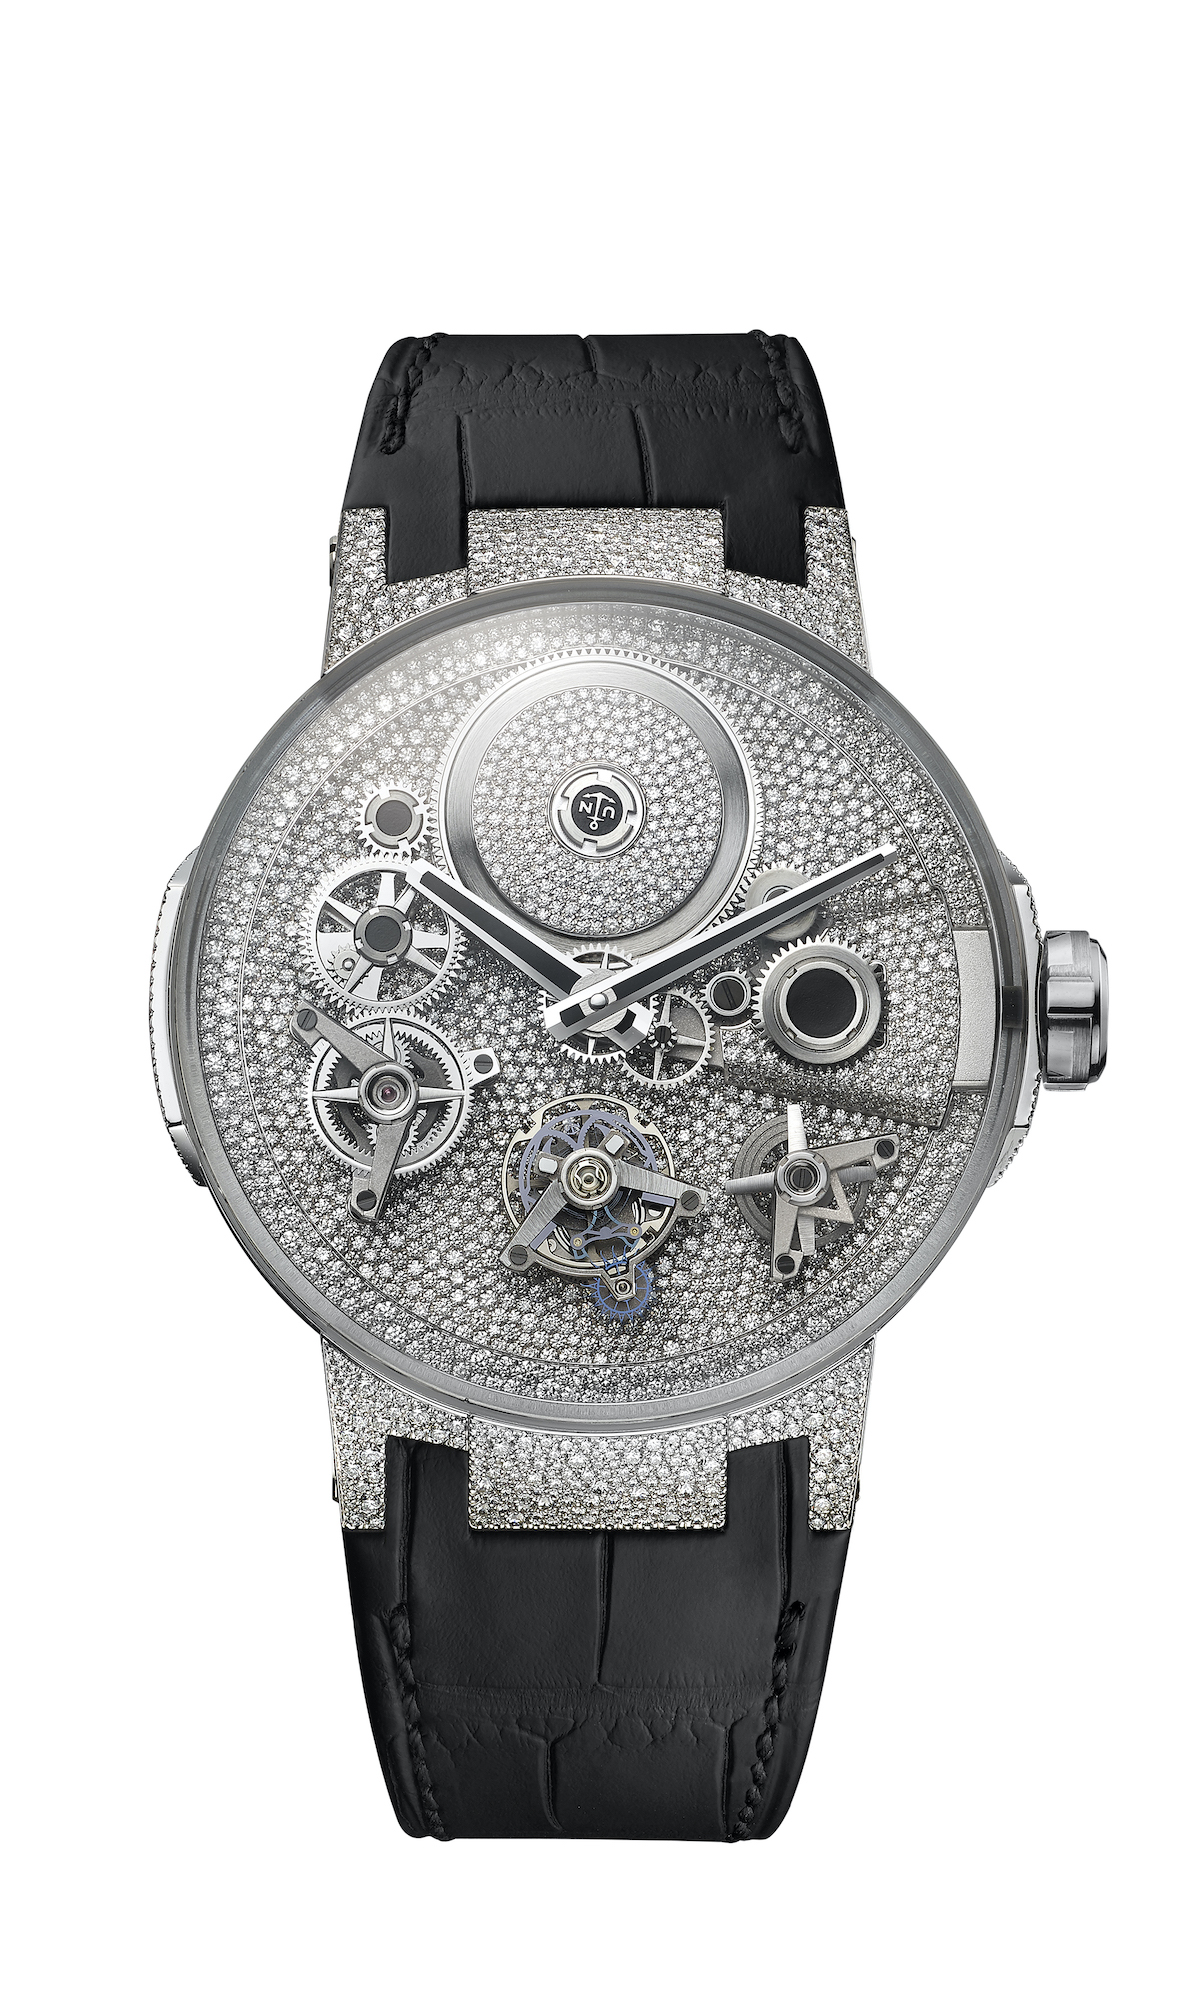 Ulysse Nardin Sparkling Free Wheel watch